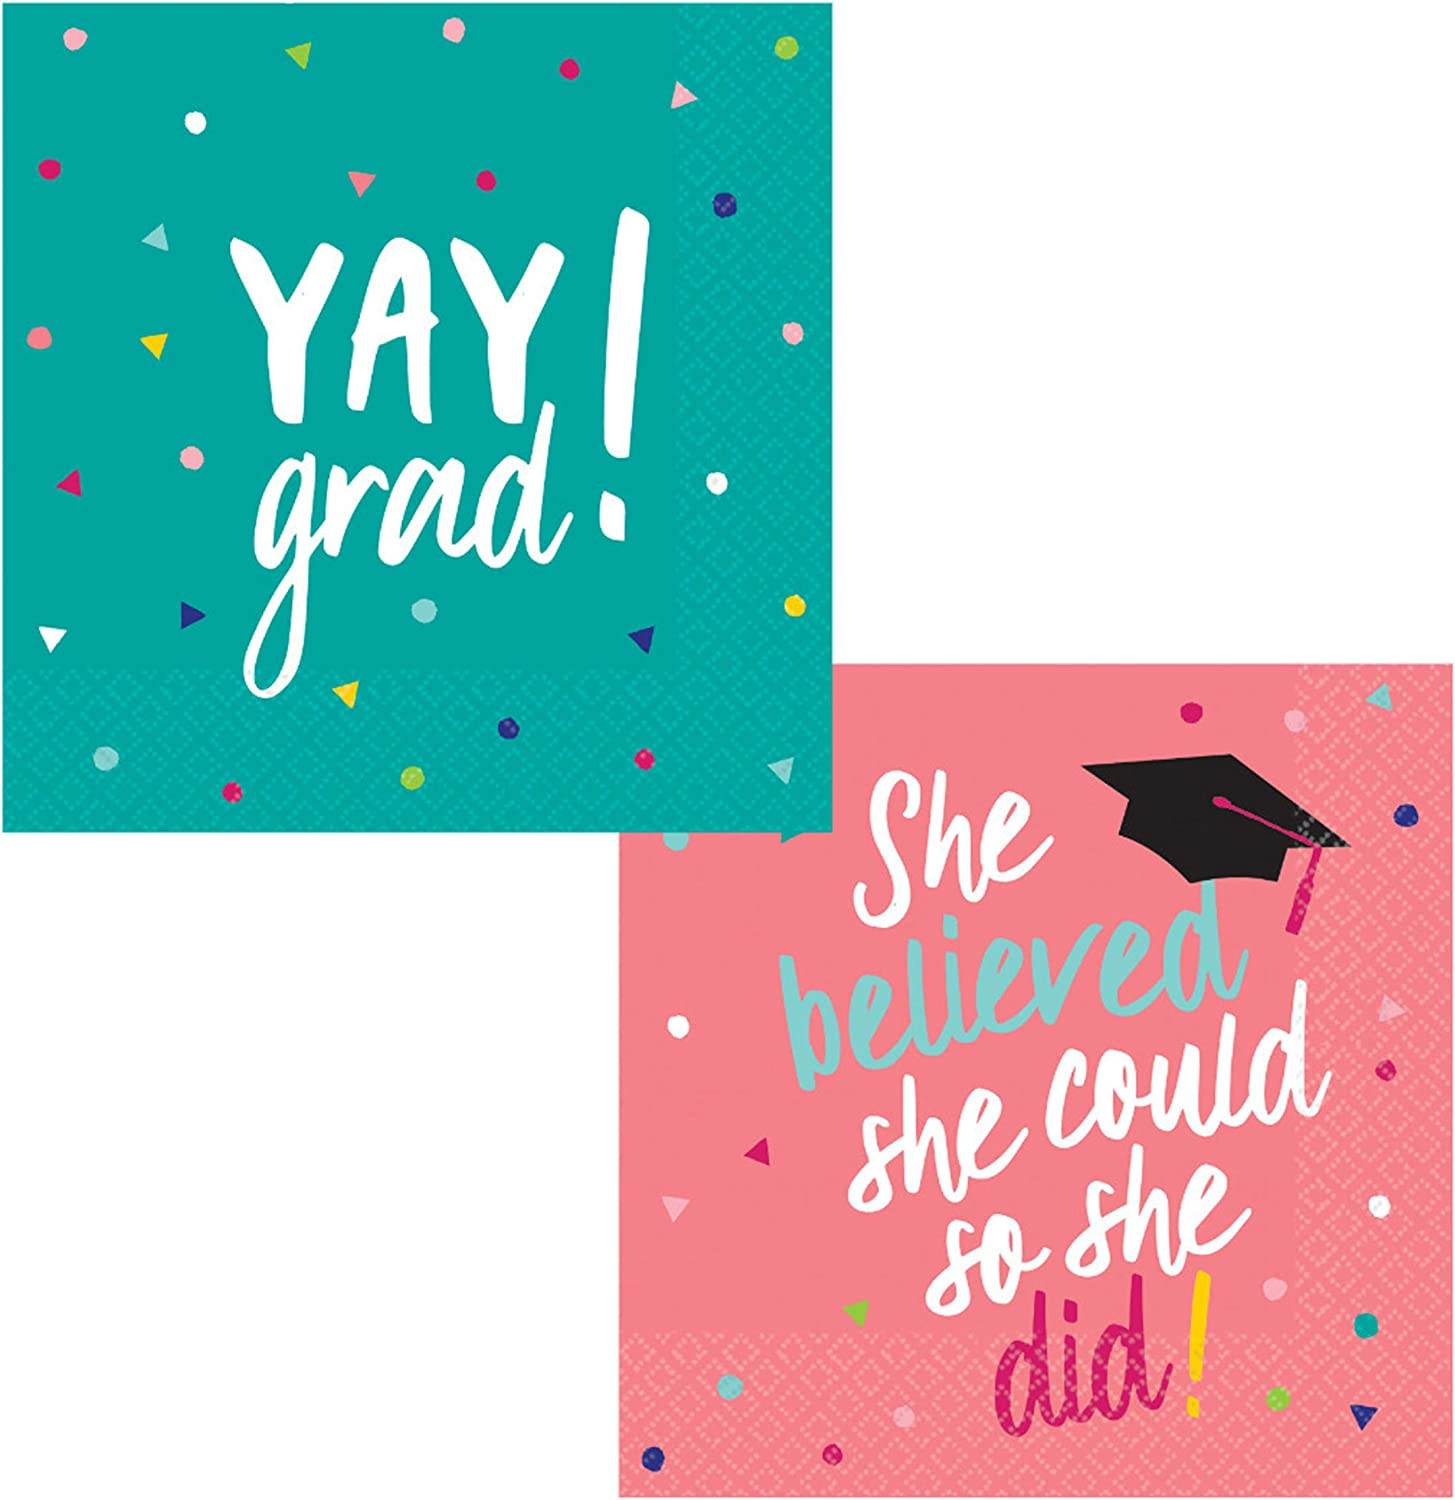 Graduation Themed Cocktail Napkins Variety Pack - Bundle Includes 72 Total Napkins in Yay Grad Design